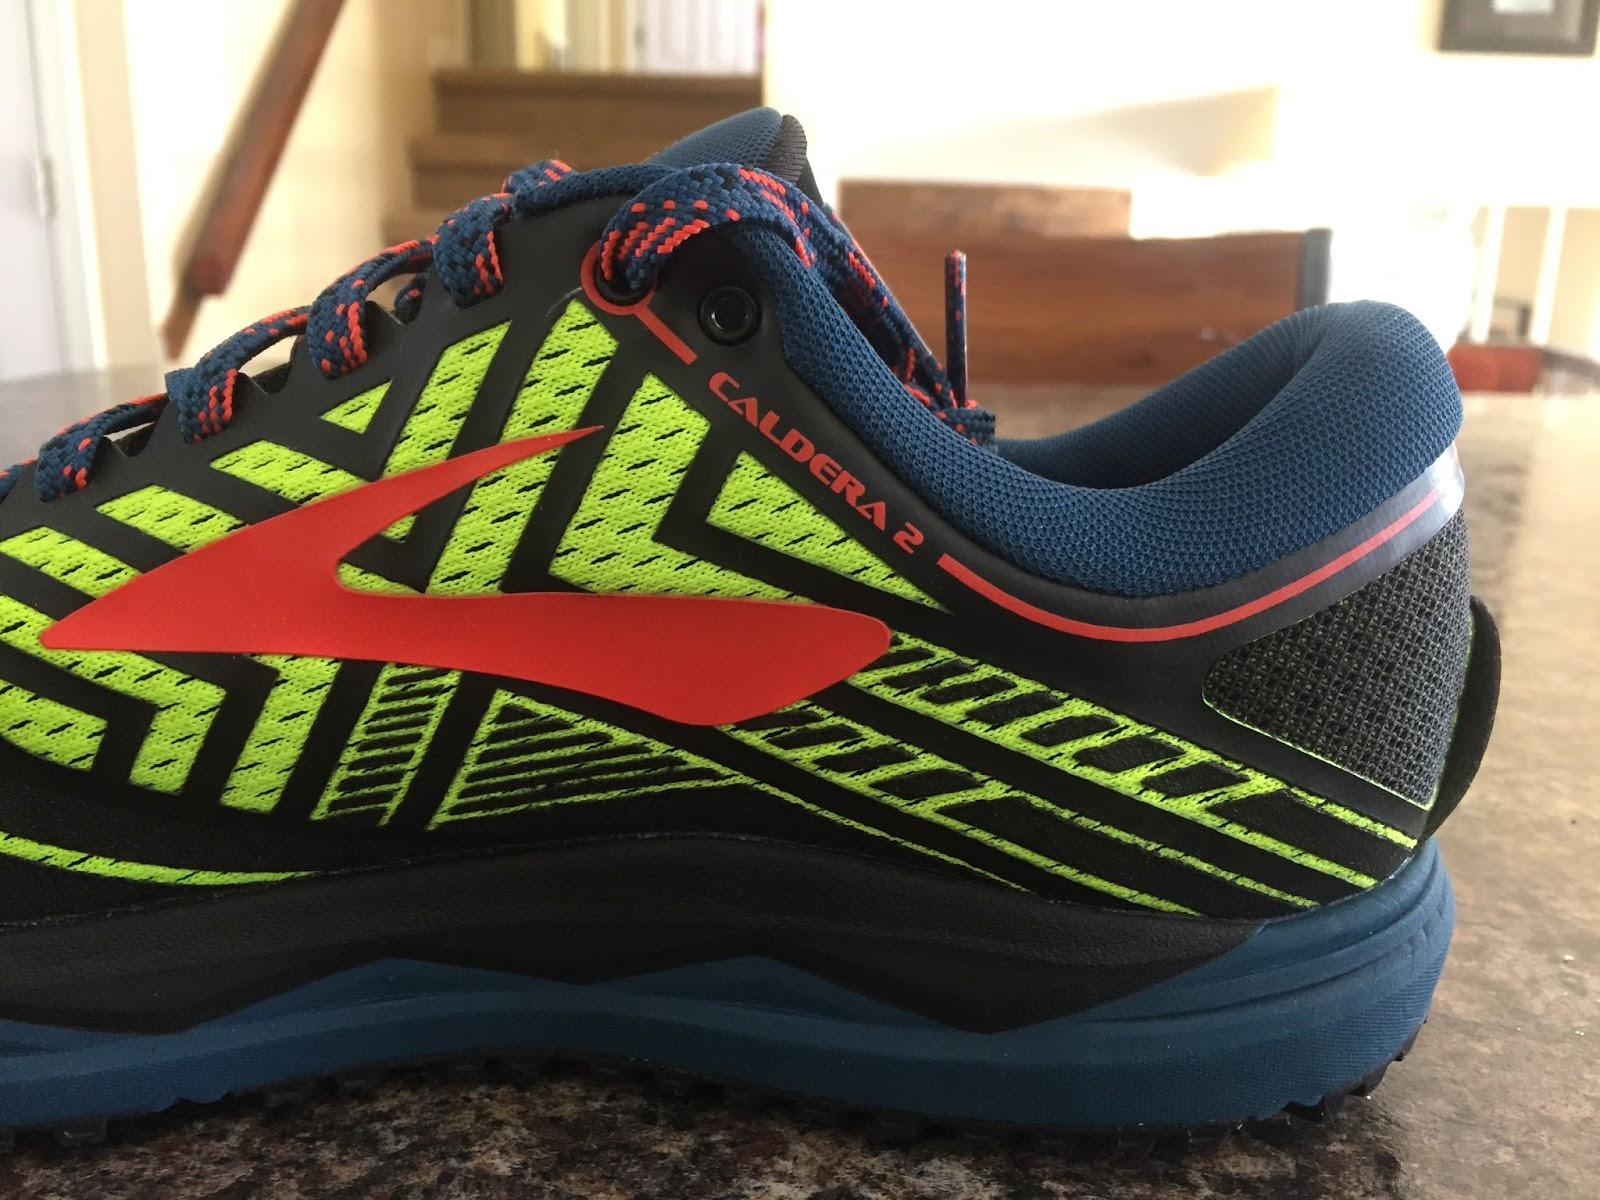 861c5c2796e48 Road Trail Run  Brooks Caldera 2 Review - All of the Goodness of the ...